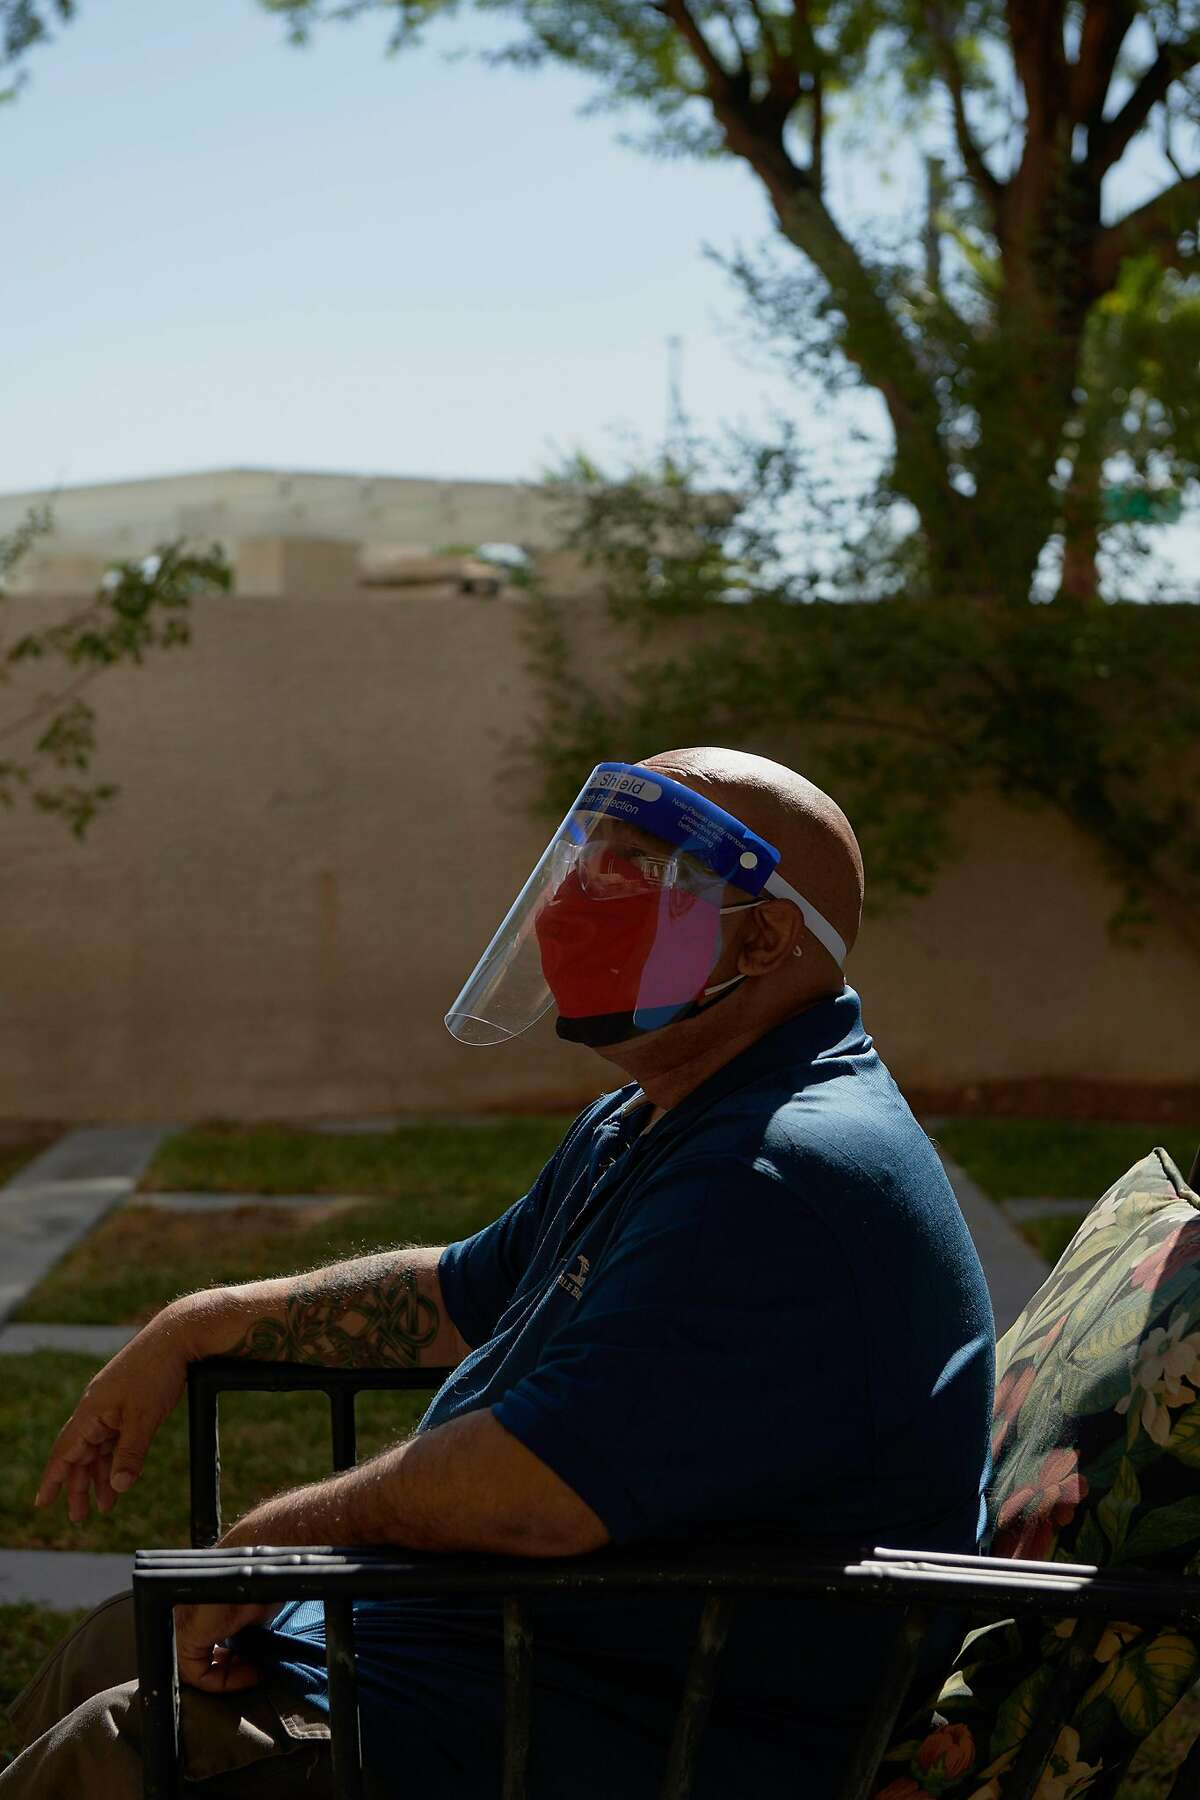 Tony Pinero, a ride share driver, in Las Vegas on Sept. 2, 2020. Pinero is among a growing group of Americans who survived their initial bout with the coronavirus, but are now reporting serious, long-term symptoms. (Bridget Bennett/The New York Times)